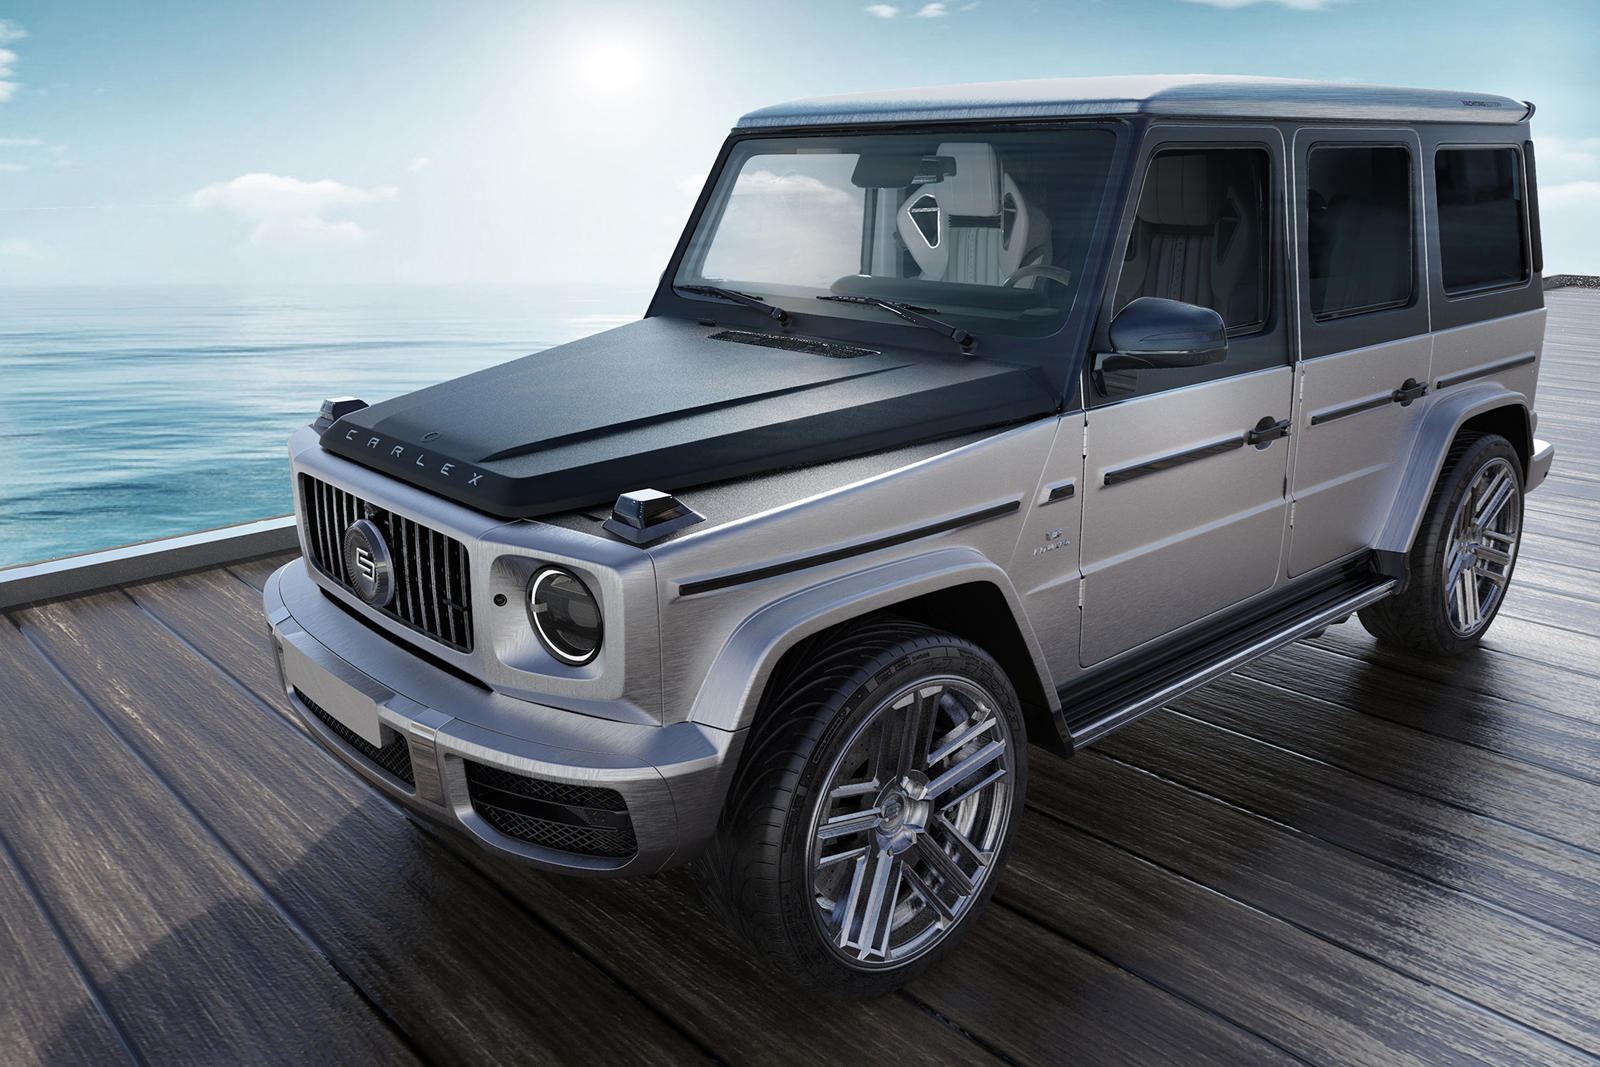 Mercedes Amg G63 Yachting Limited Edition Offers Insane Decadence Carbuzz